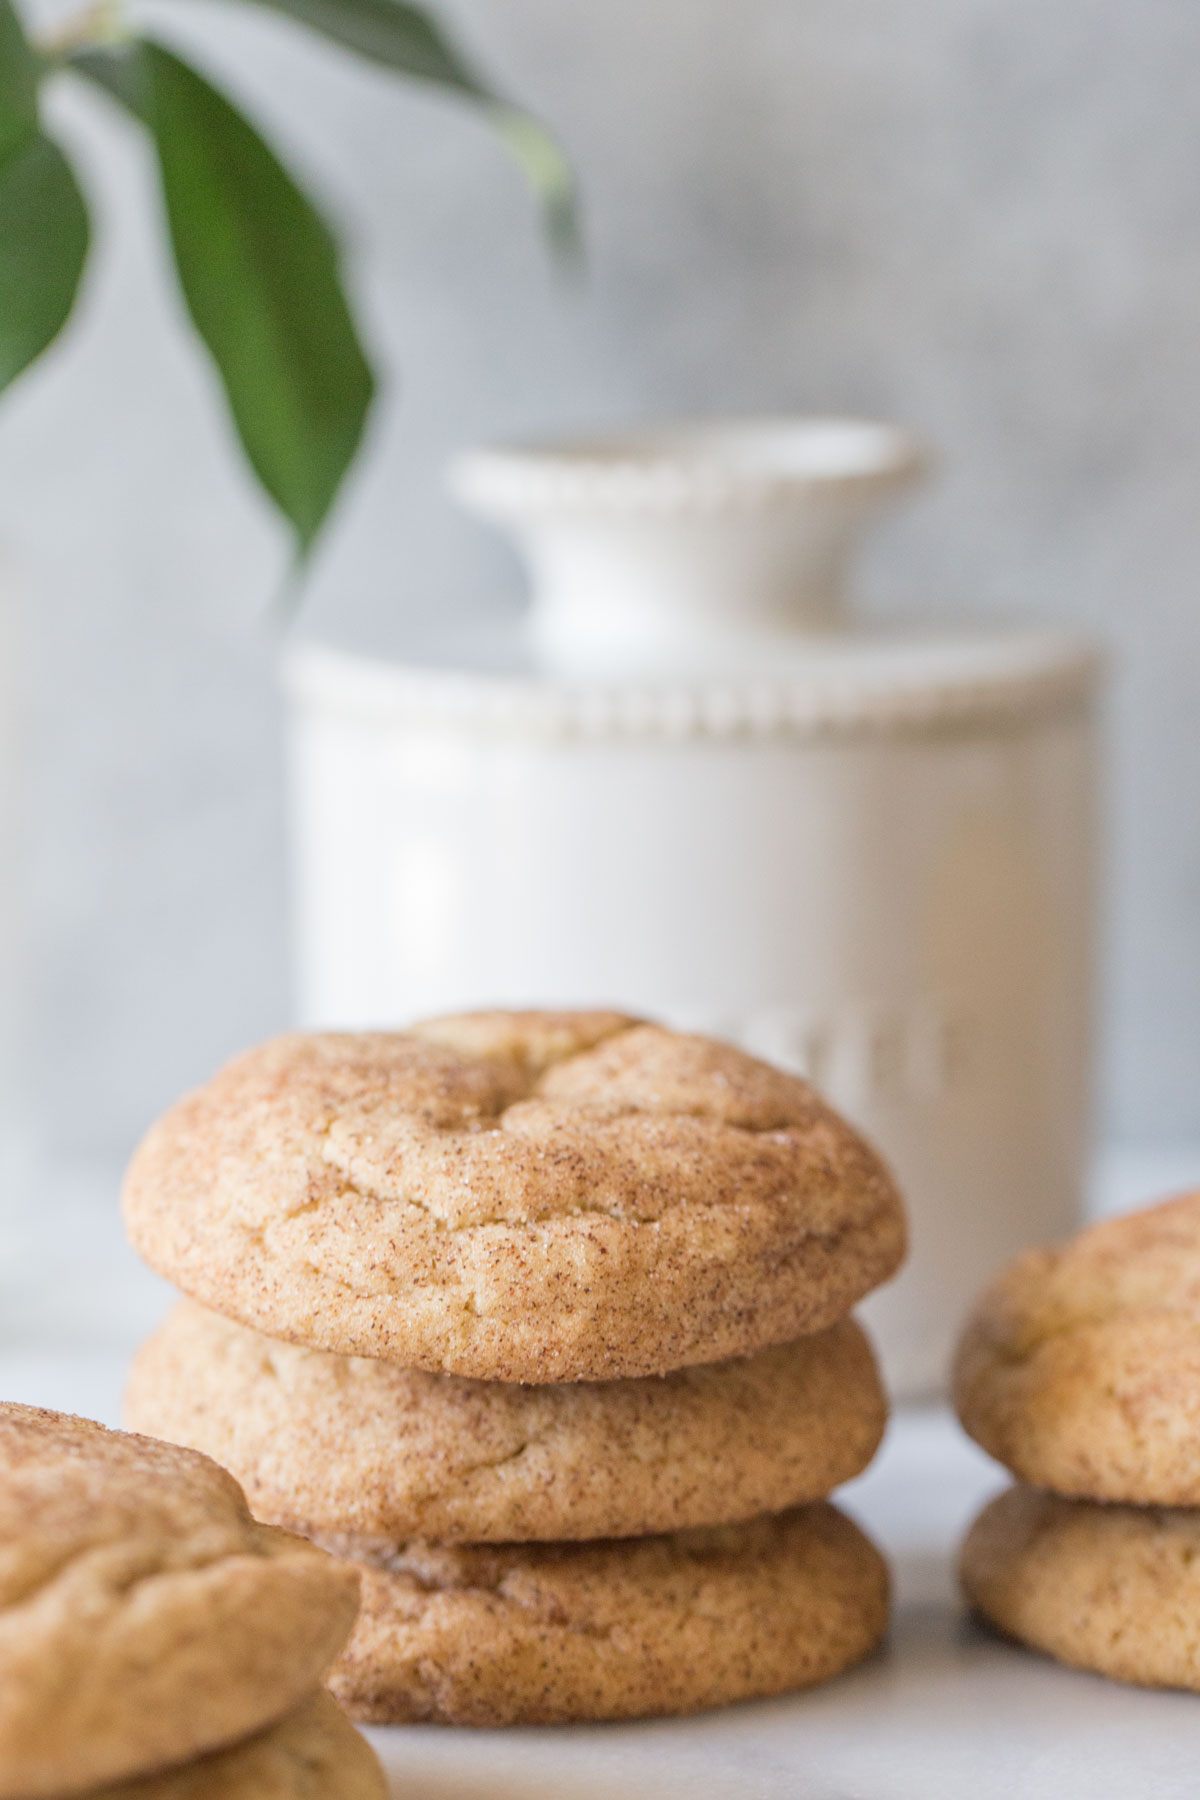 Super Soft Snickerdoodles stacked in front of a butter crock with a grey background.